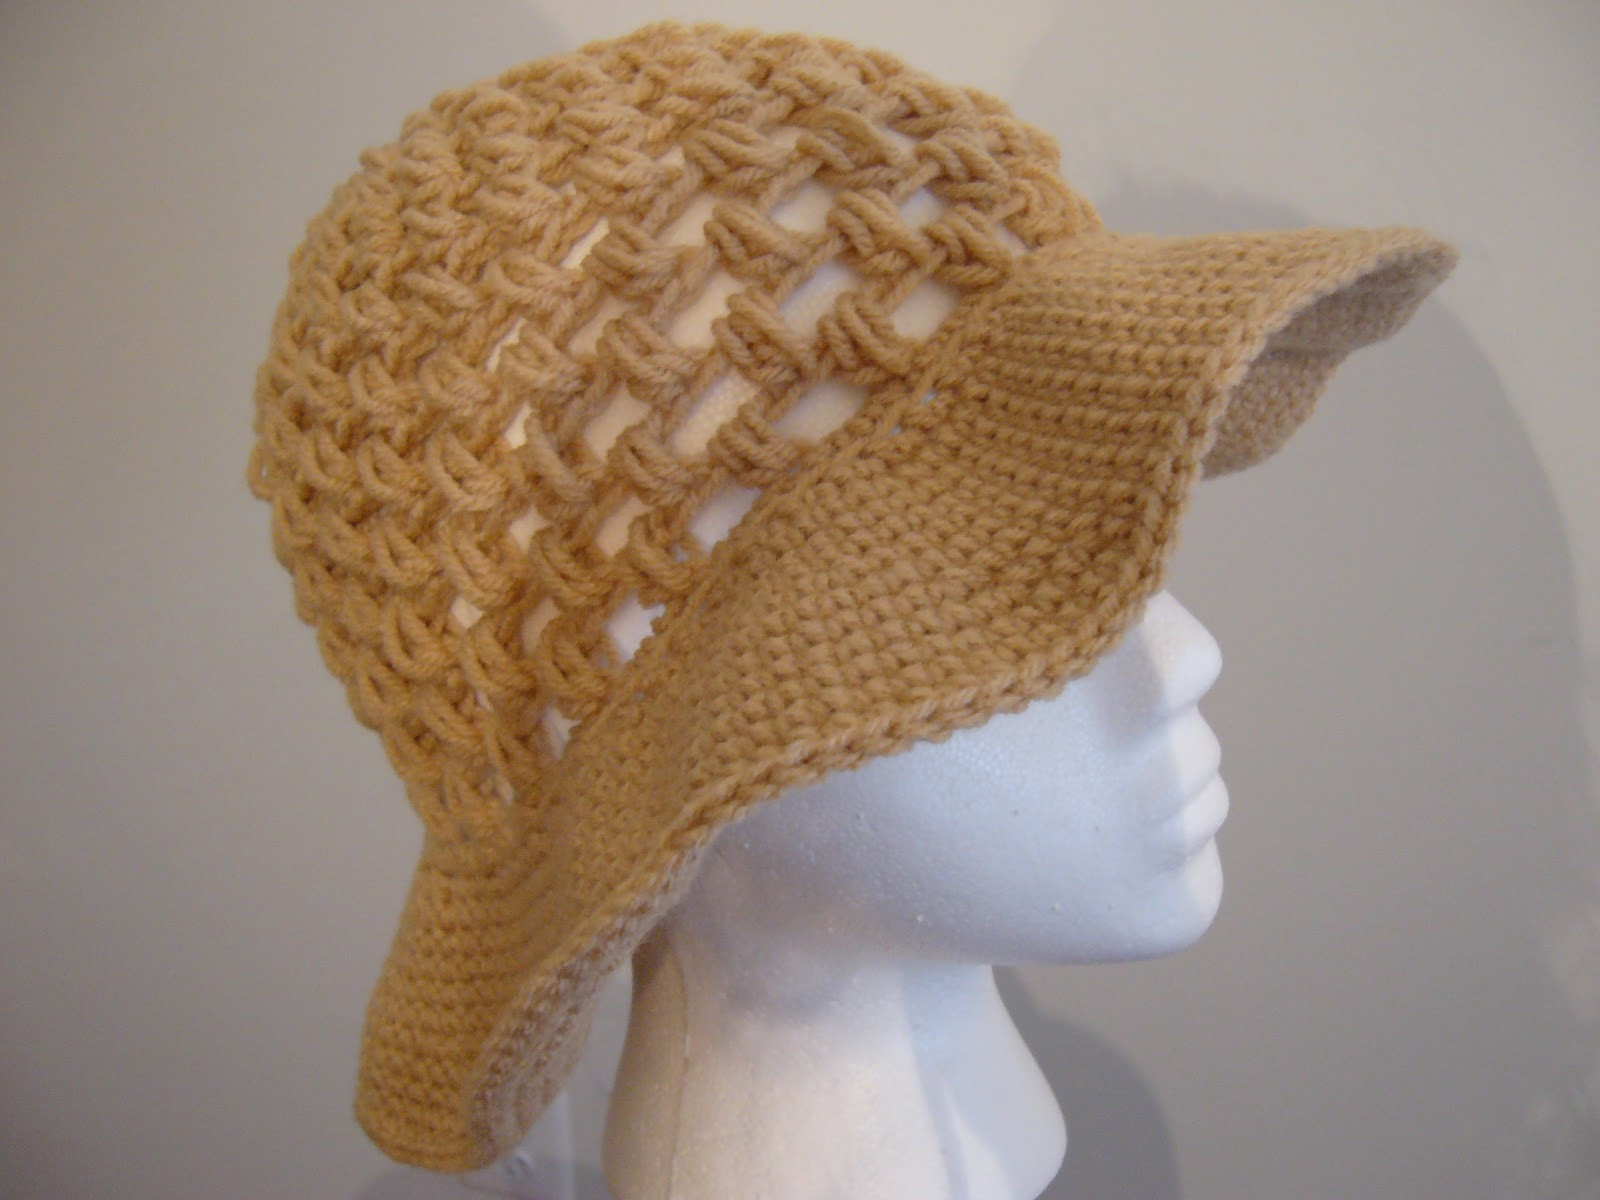 New Crochet Floppy Hat Pattern Patterns Crochet Summer Hat Pattern Of Incredible 46 Photos Crochet Summer Hat Pattern